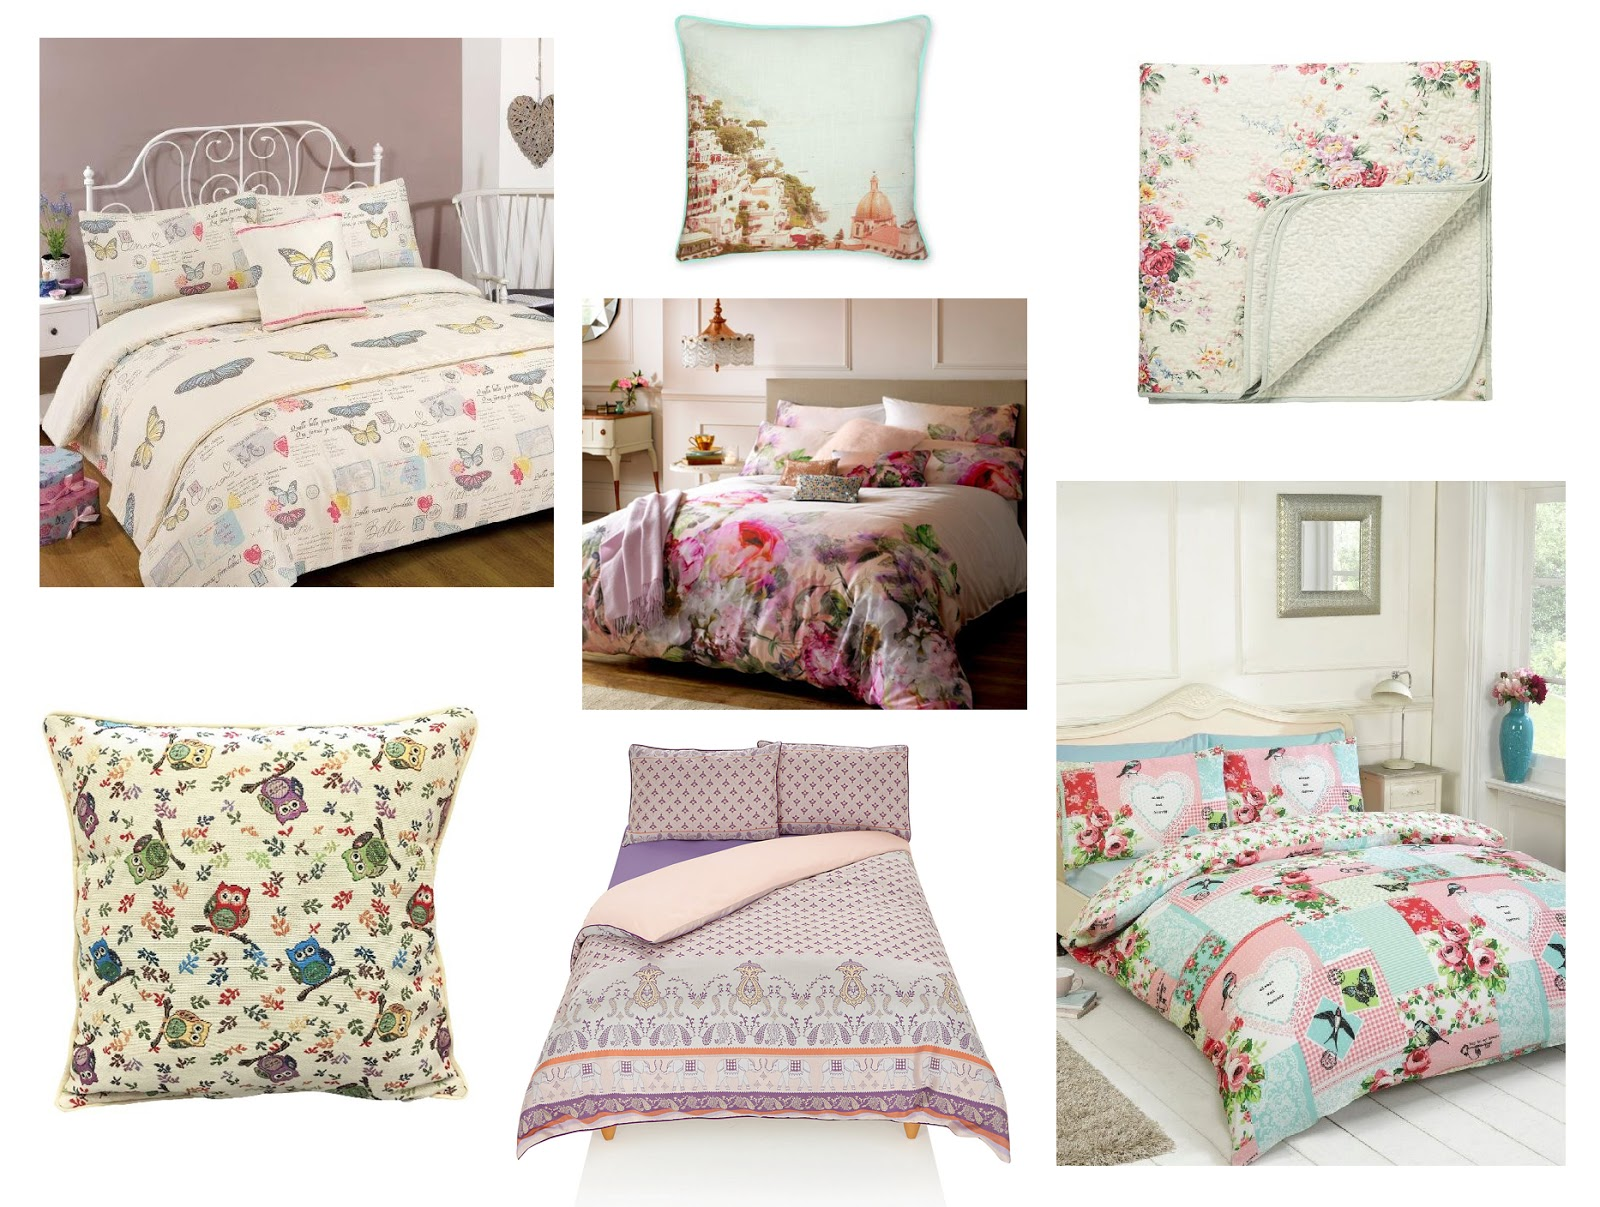 Bedding For Changing Your Bedroom Atomsphere: Patterns Moodboard | Katie Kirk Loves